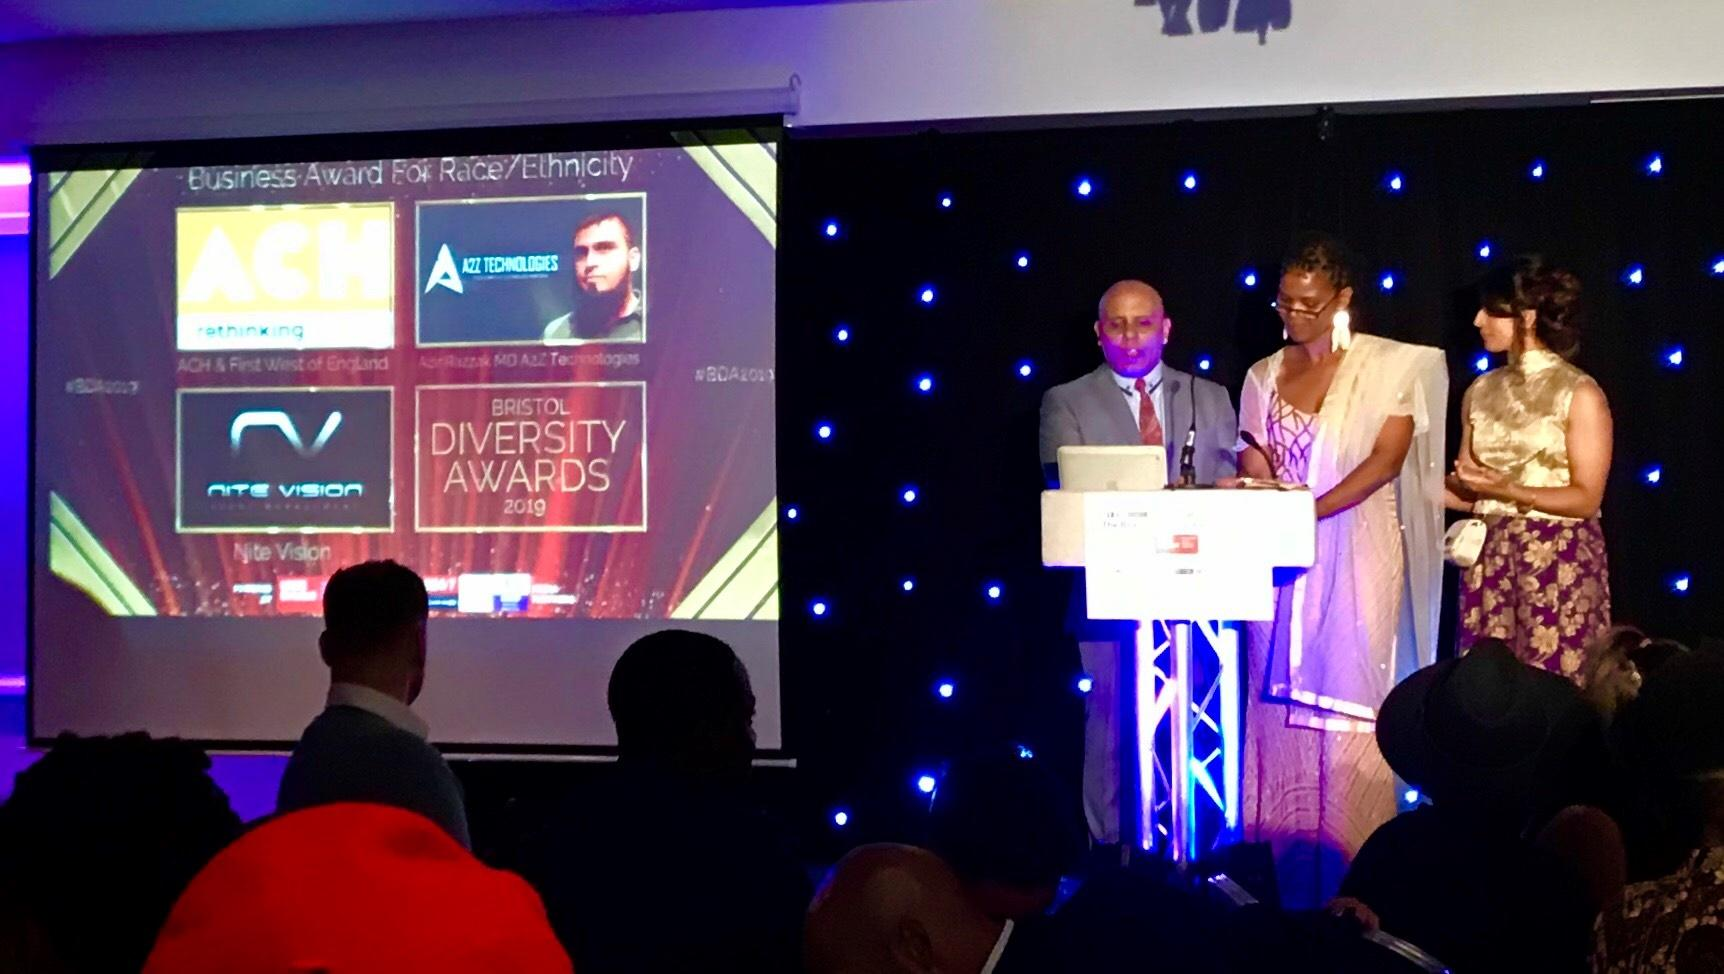 ACH shortlisted for the Business Award for Race/Ethnicity at the Bristol Diversity Awards